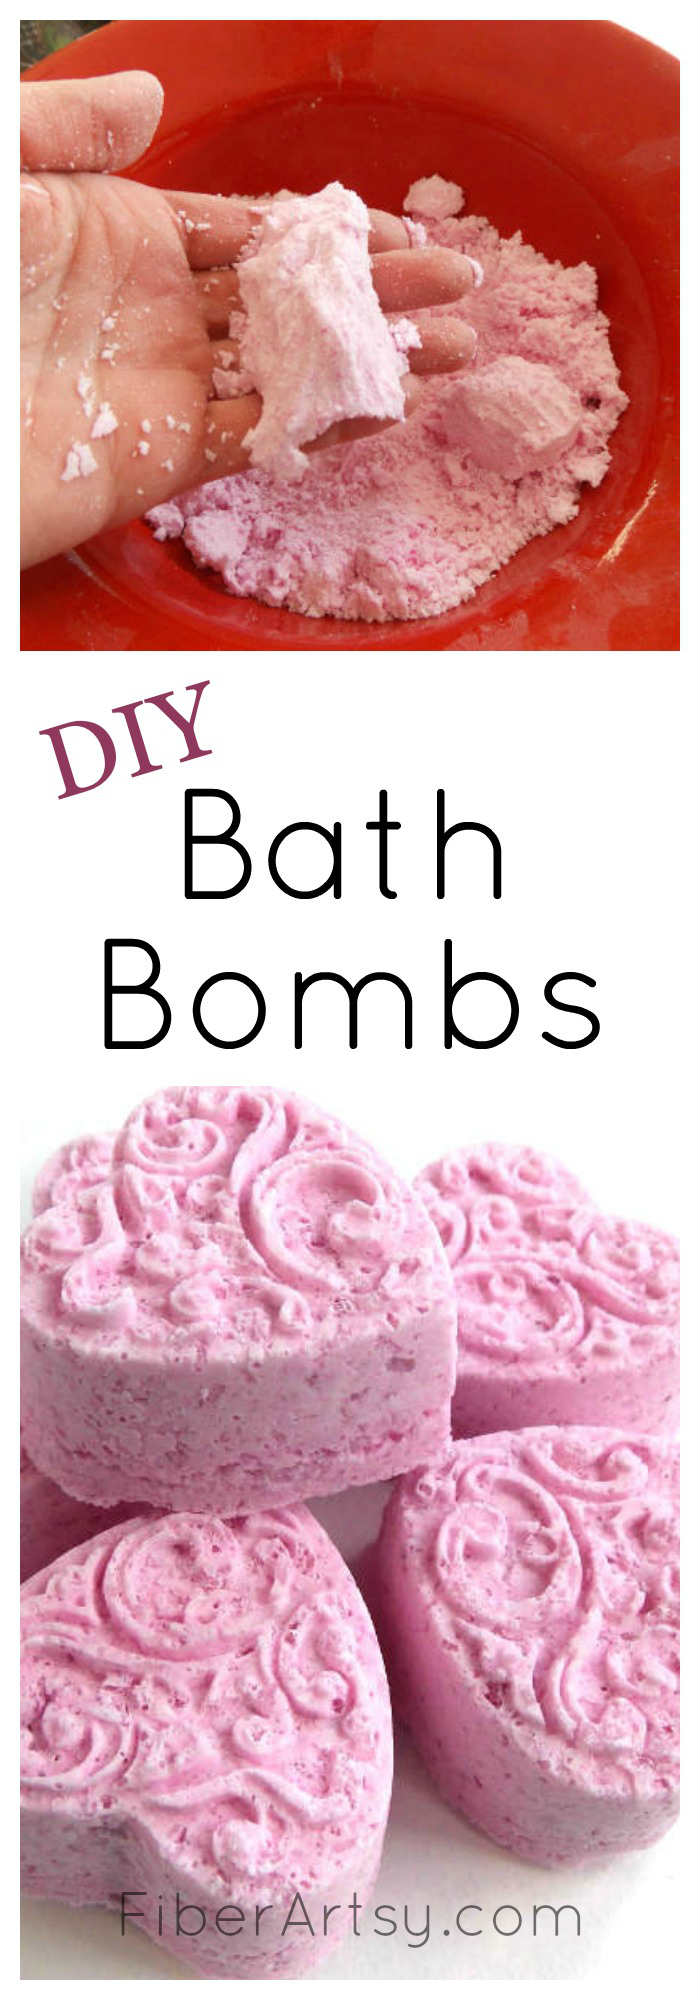 DIY Bath Bomb Recipe, Super easy recipe for making your own Bath Bombs at home.